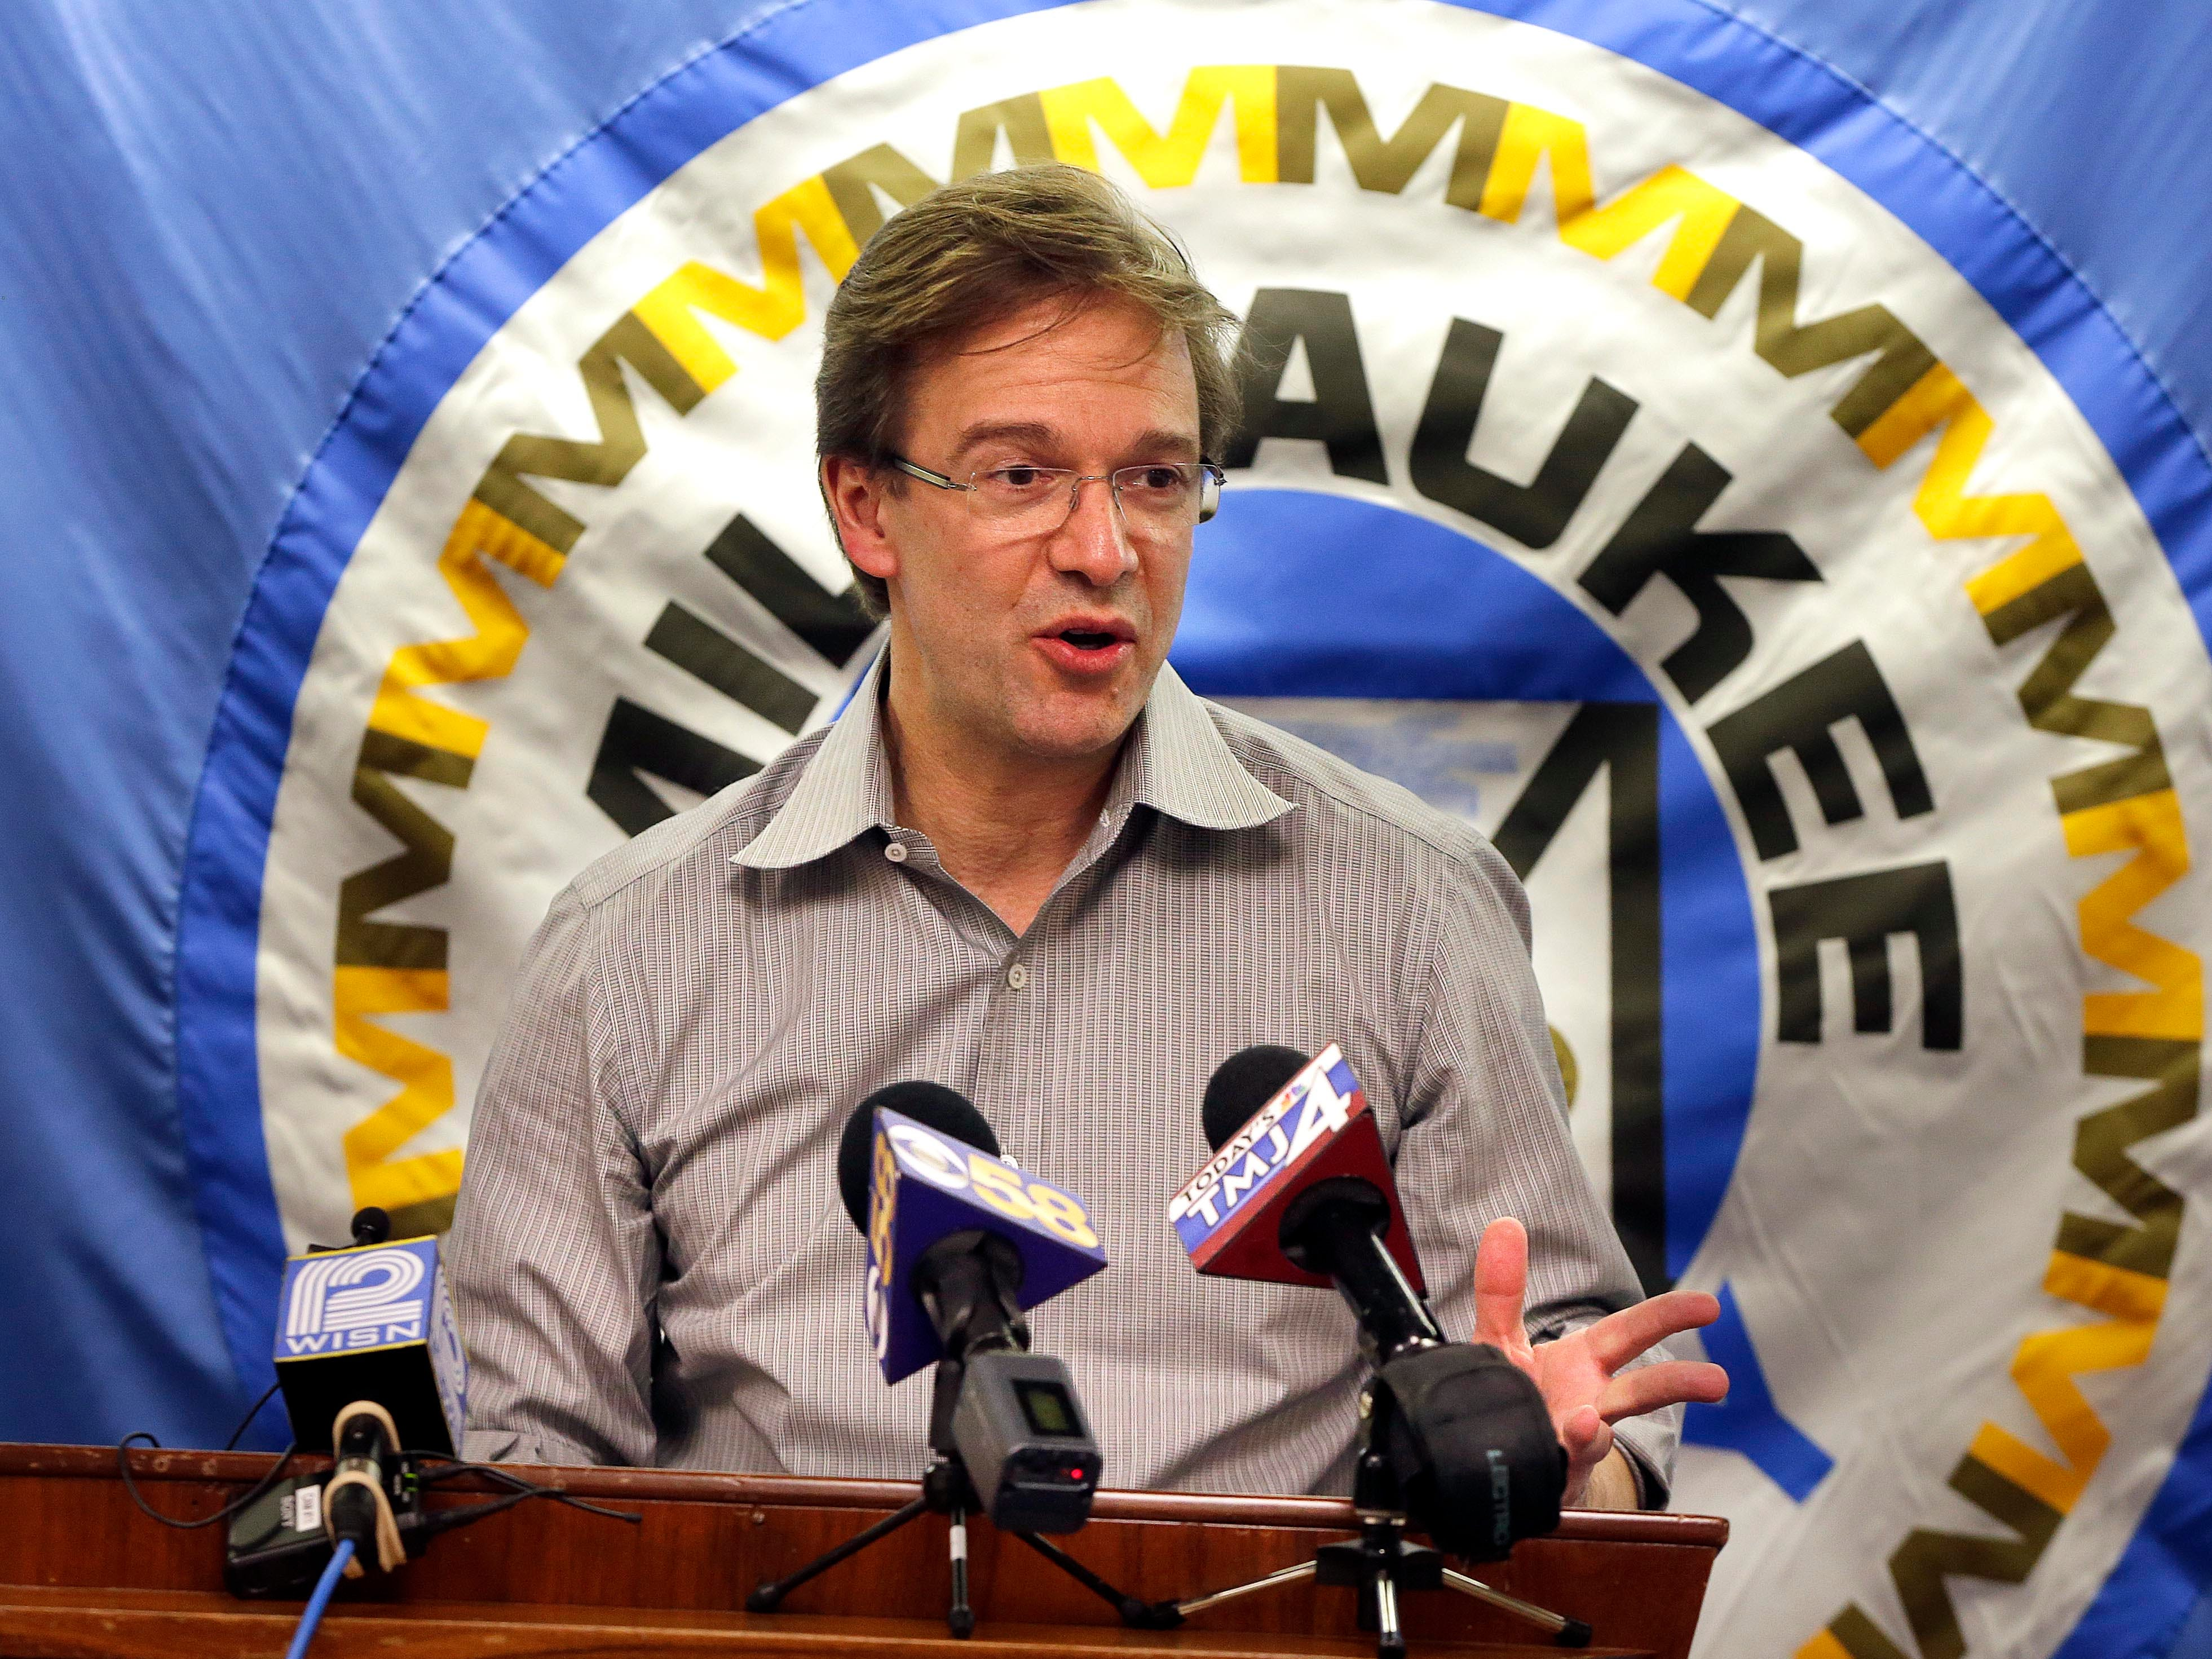 2016: At a press conference, Milwaukee County Executive Chris Abele discusses an engineering study that concluded the cost of refurbishing the troubled Mitchell Park Domes could range between $65 million and $75 million.